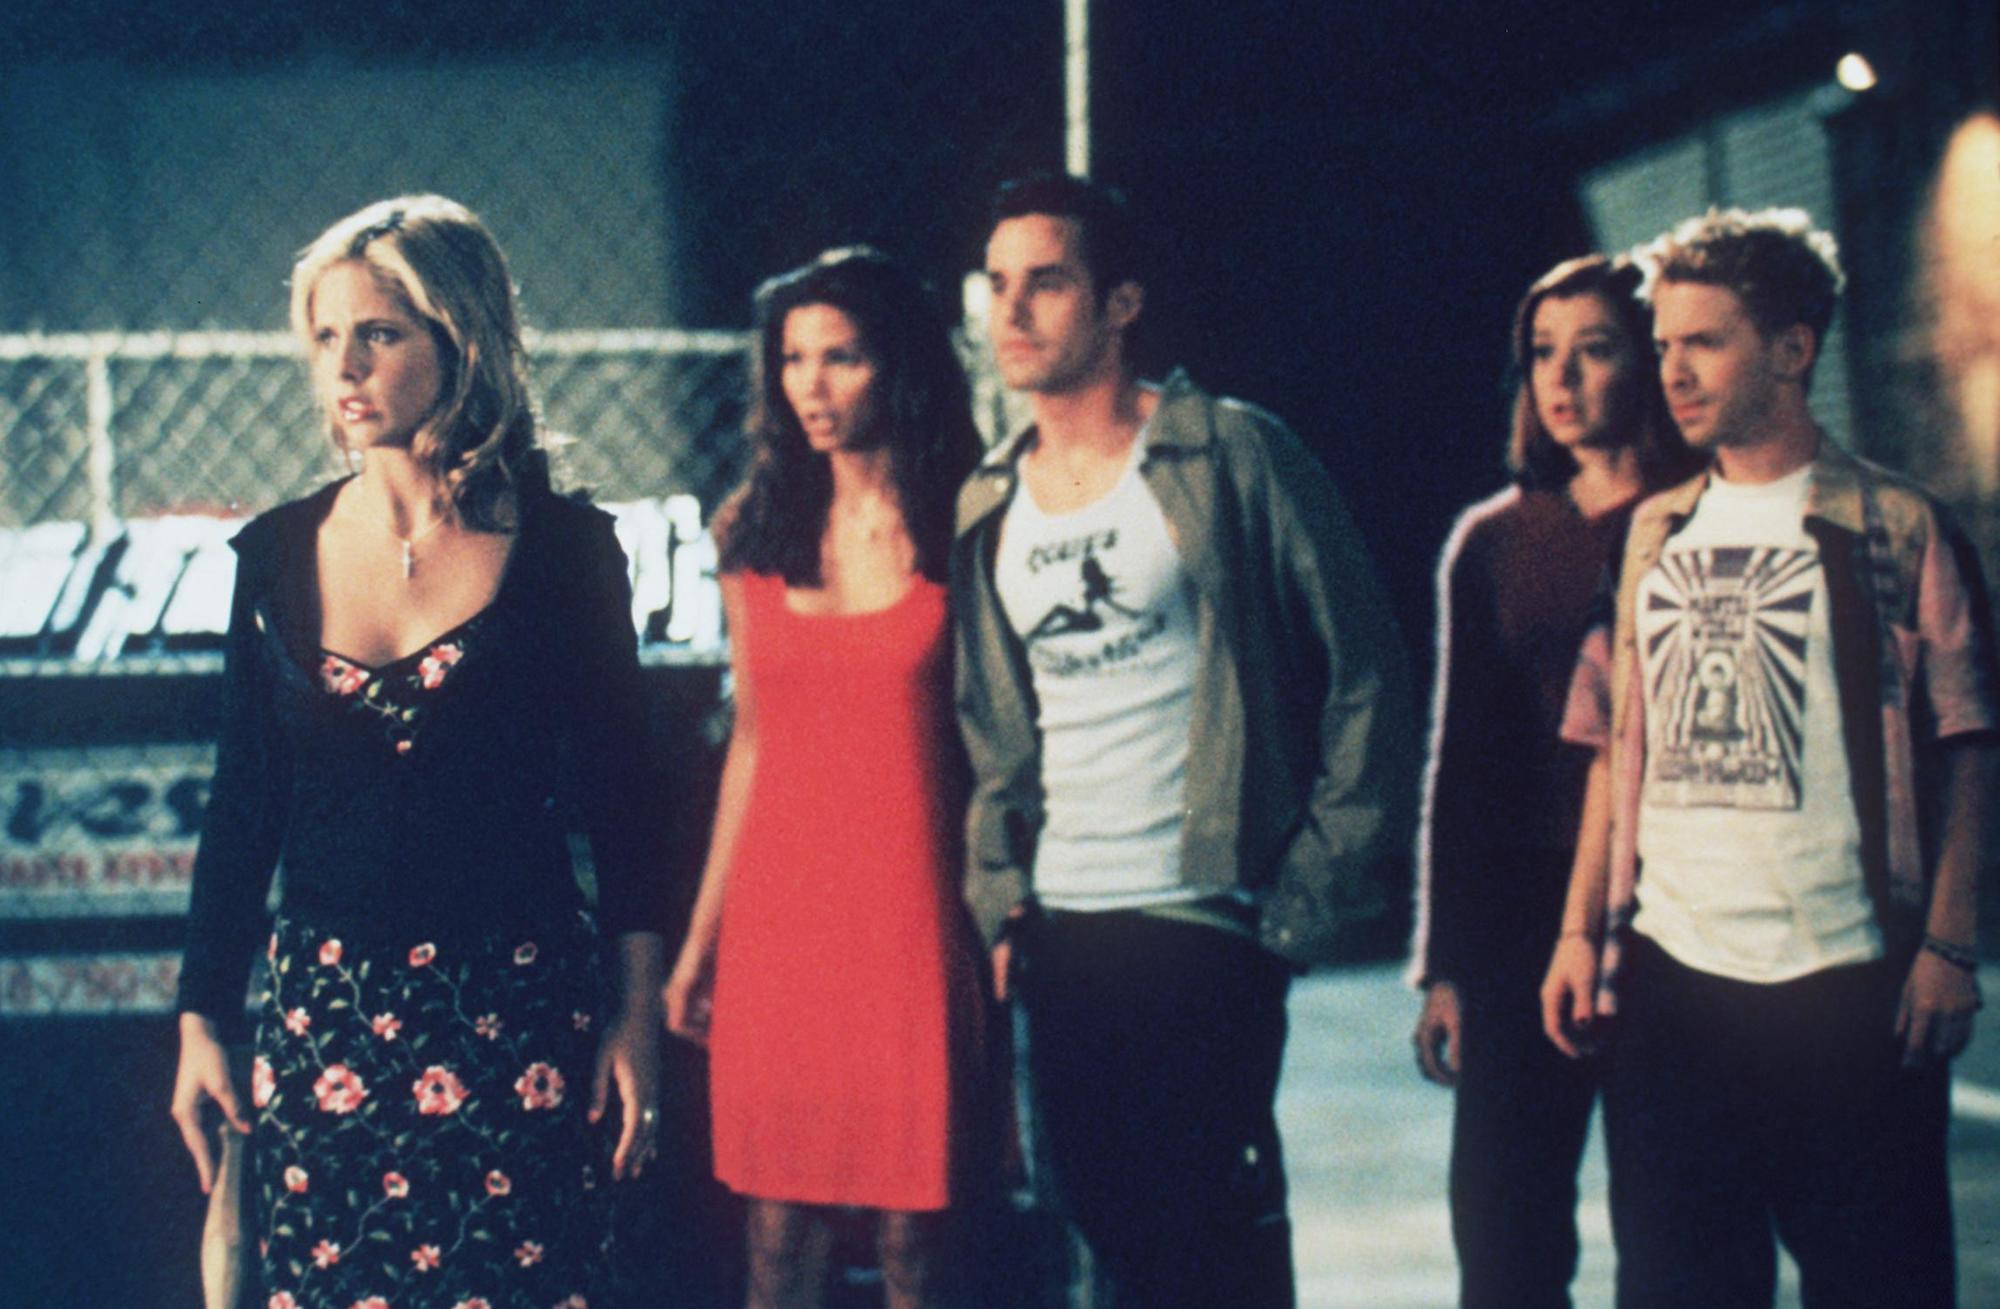 The cast of 'Buffy The Vampire Slayer' 1998.